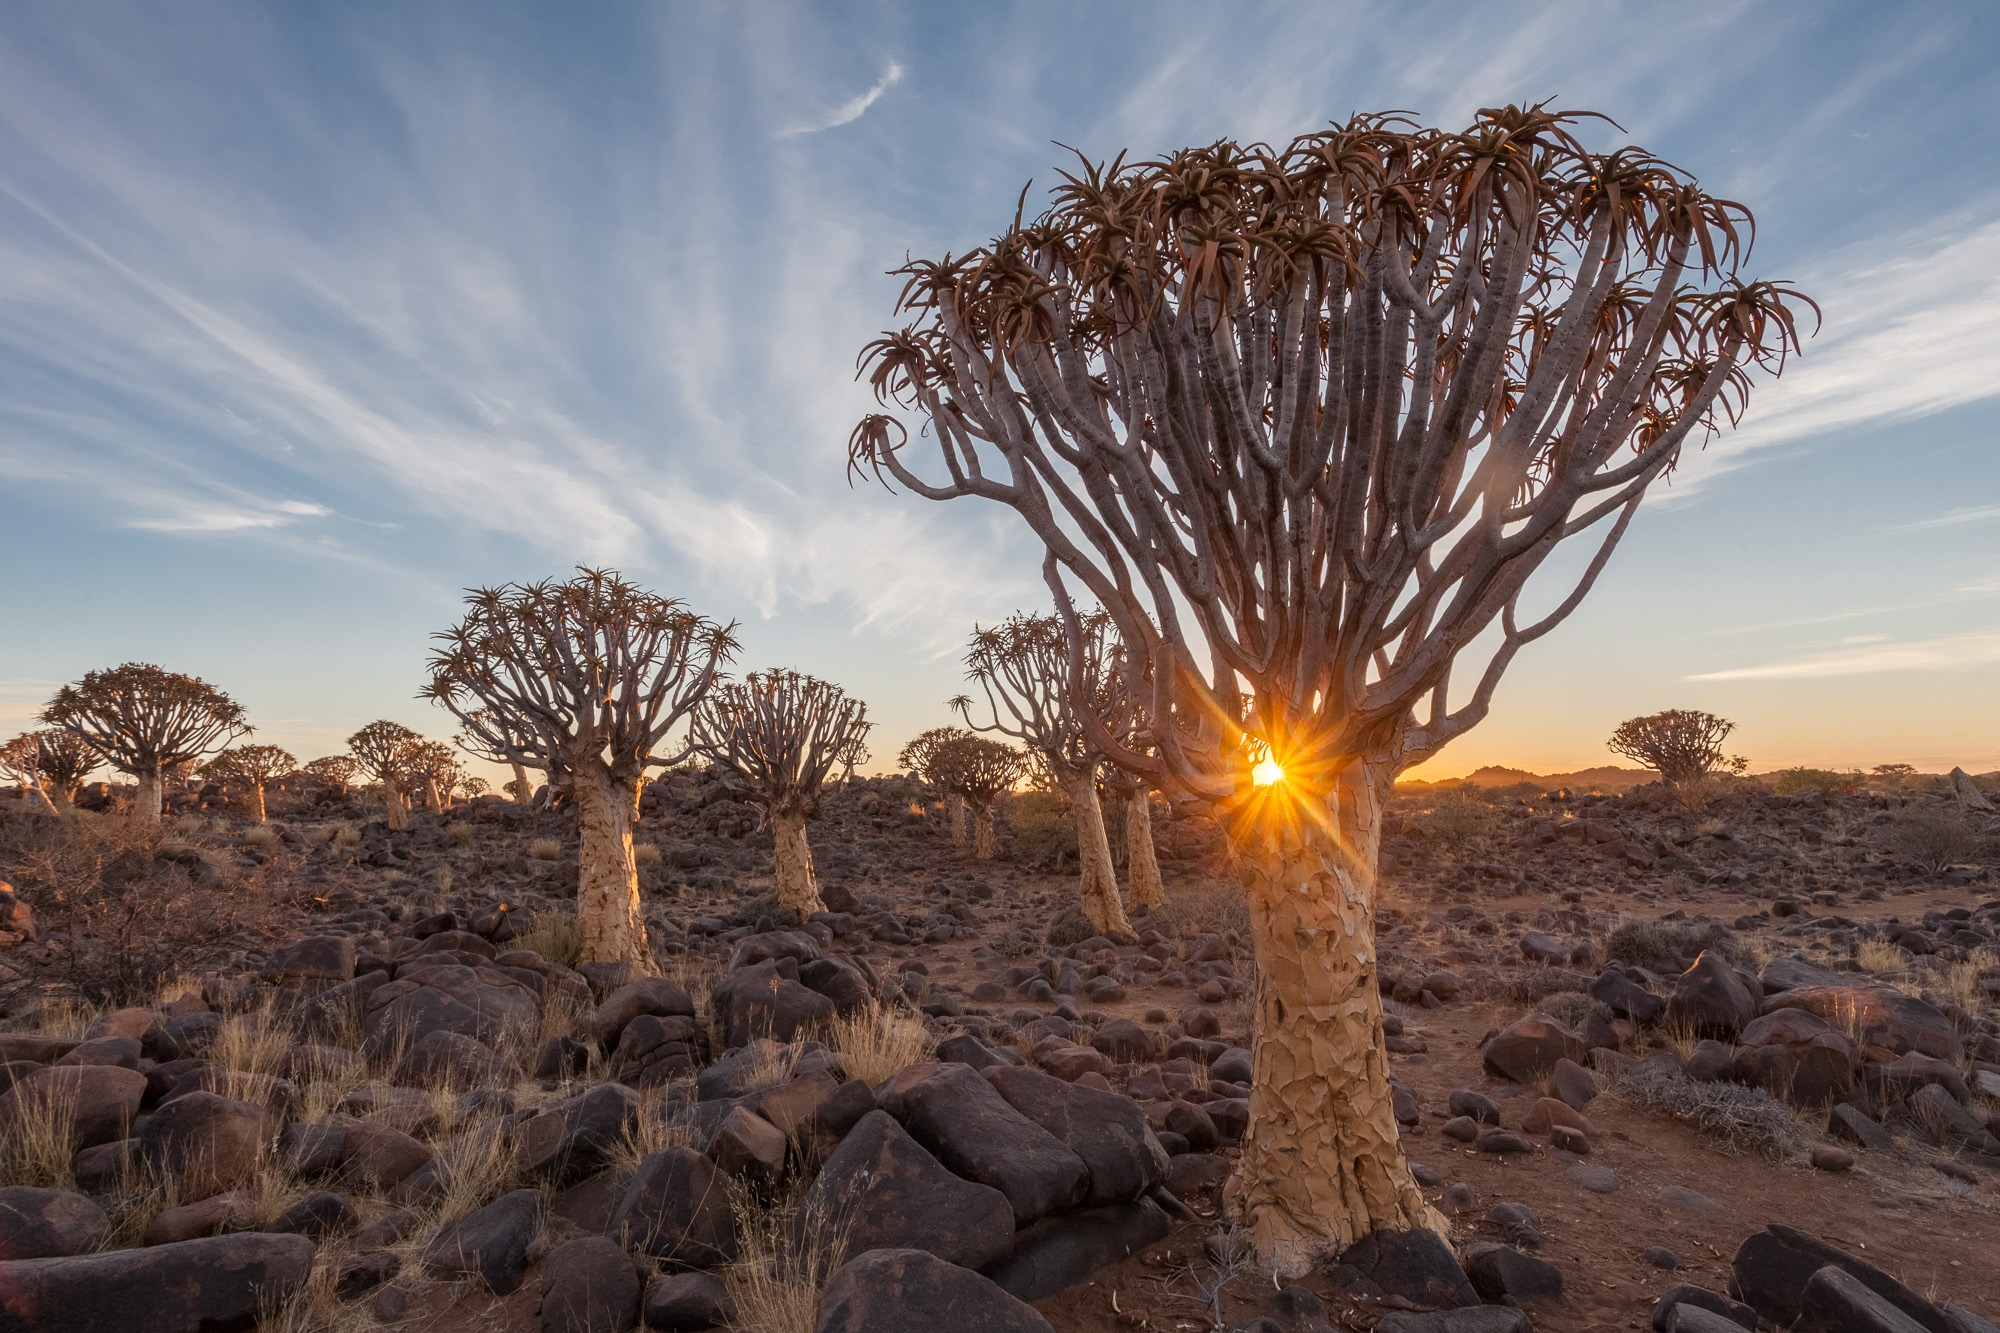 Sonnenaufgang am Köcherbaumwald in Namibia Quiver Tree Forest